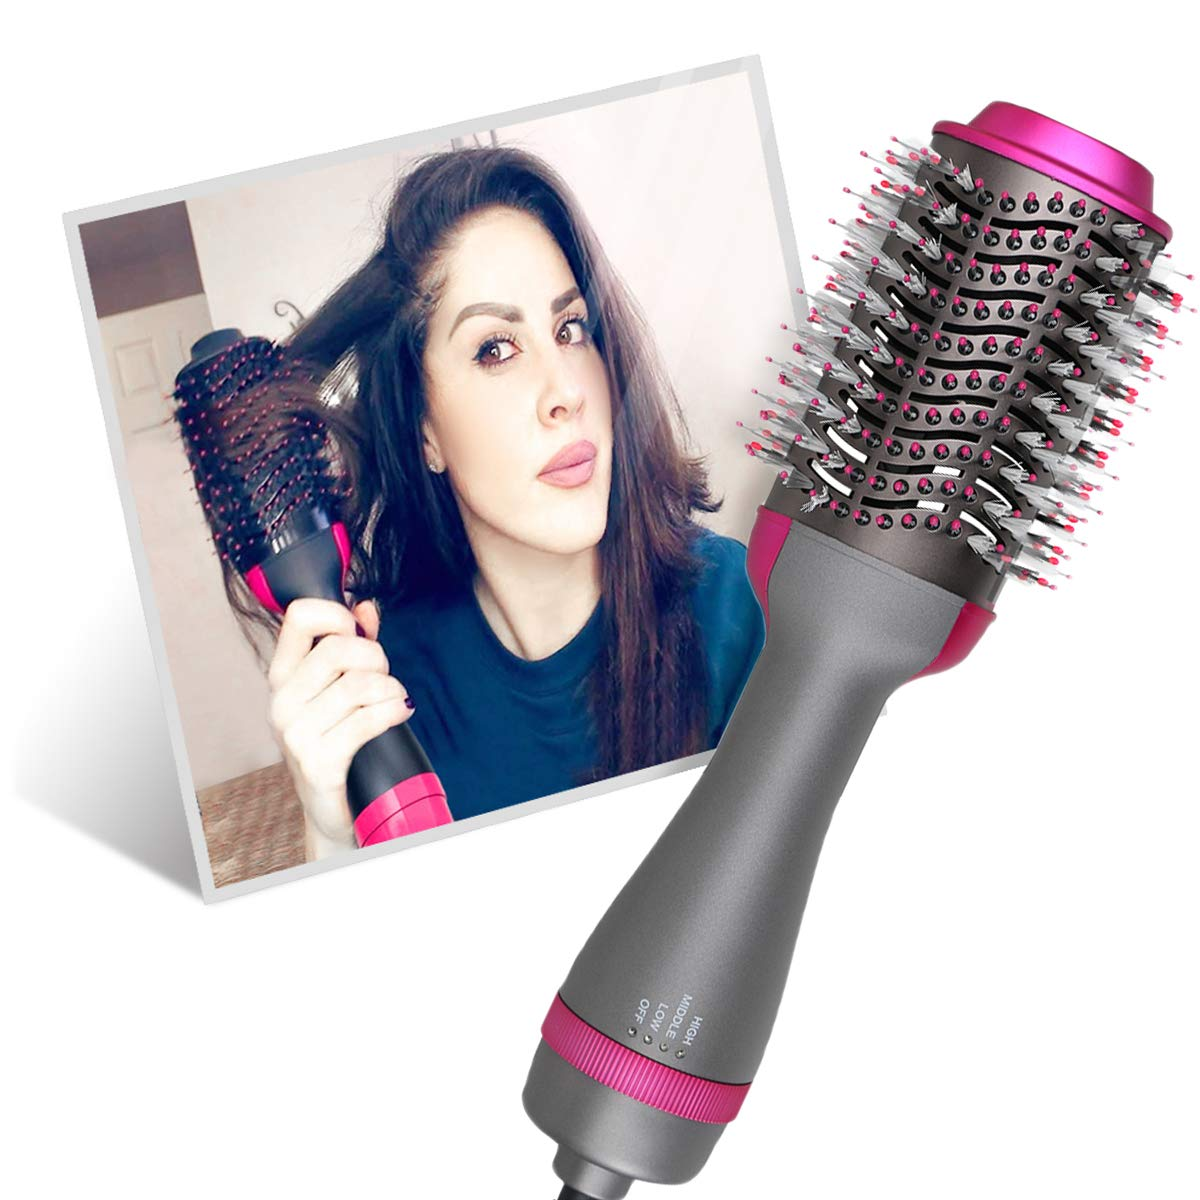 Hair Dryer Hot Air Brushes & Volumizer, Upgrade Salon Negative lon Hair Styling Brush Tool - Electric Blow Dryer for Straight, Curly & Wet hair, Ideal Gift (Cool-Gun) : Beauty